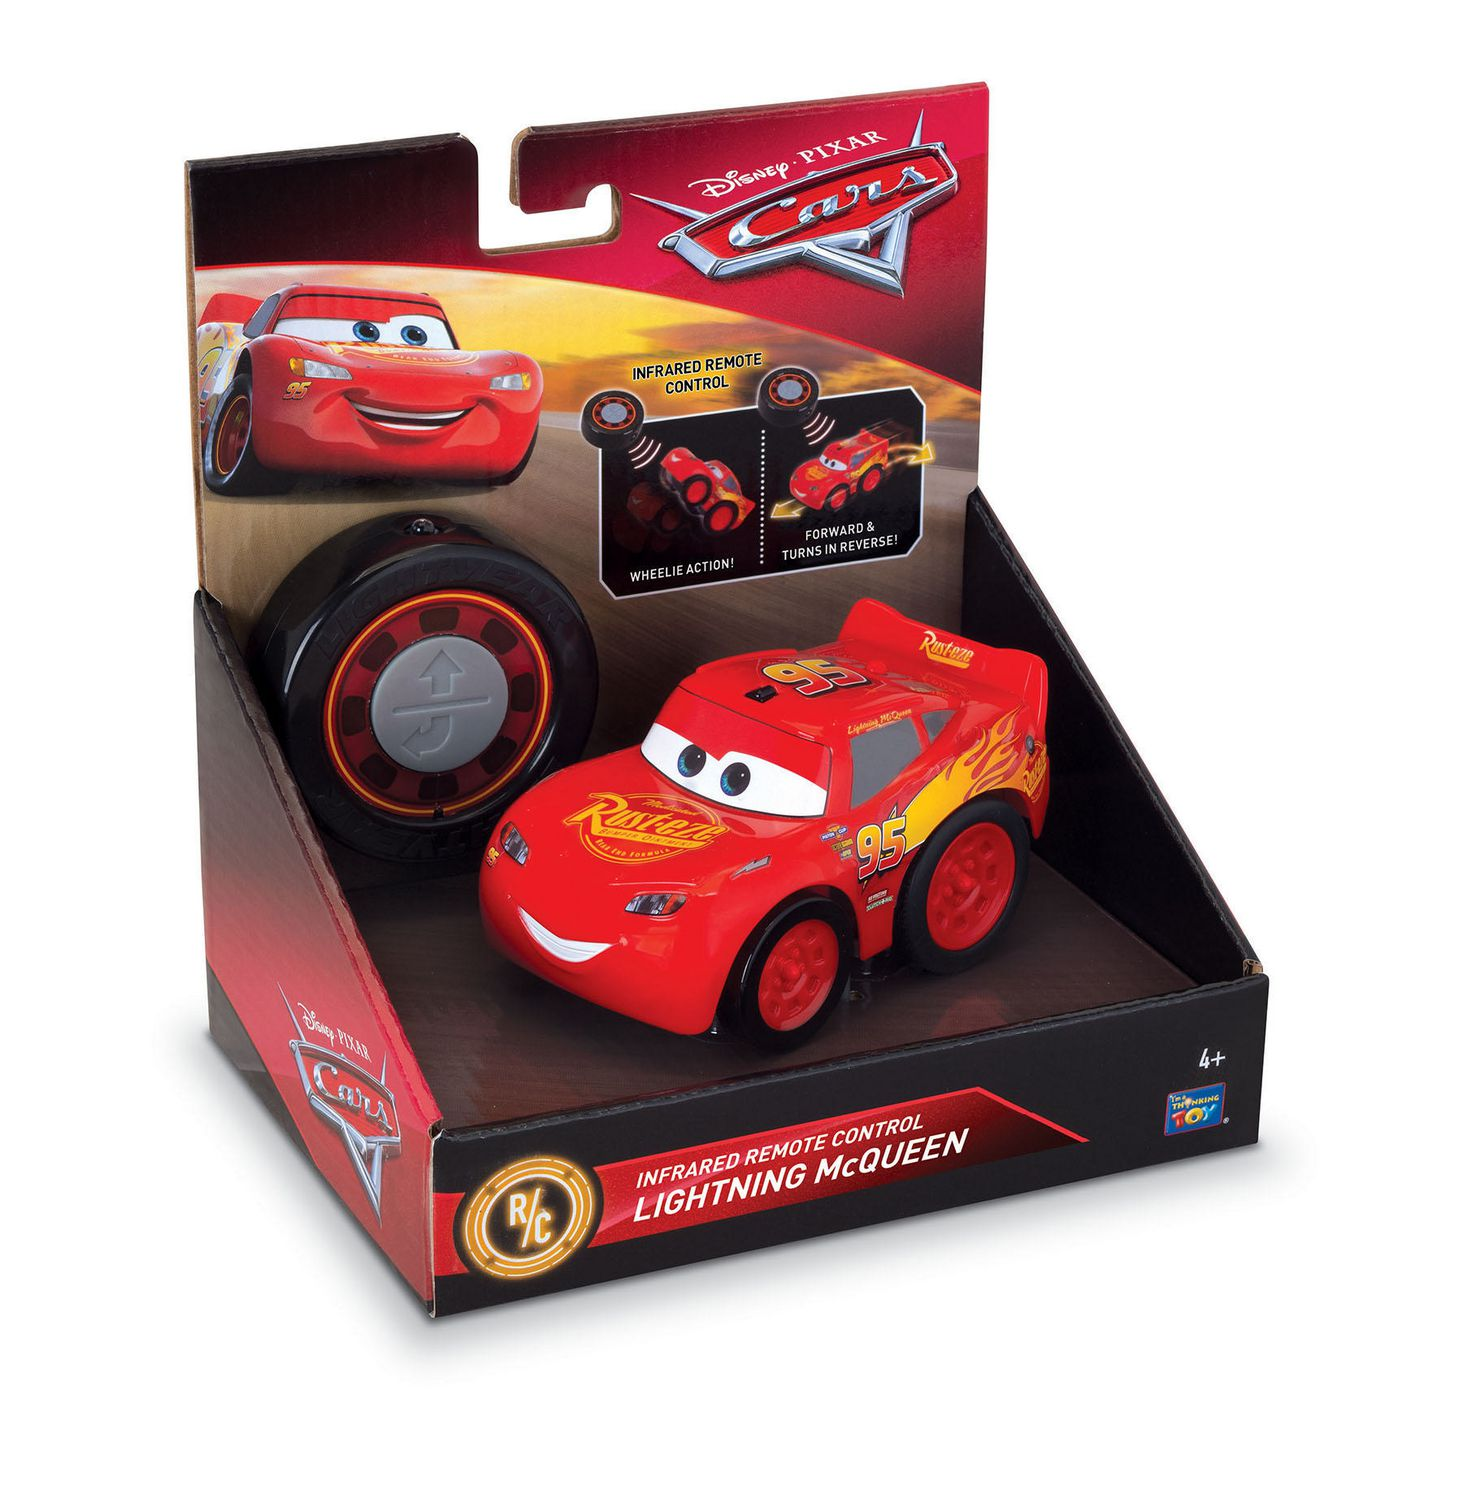 Cars 3 Lightning Mcqueen Infrared Remote Control Toy Vehicle Walmart Canada